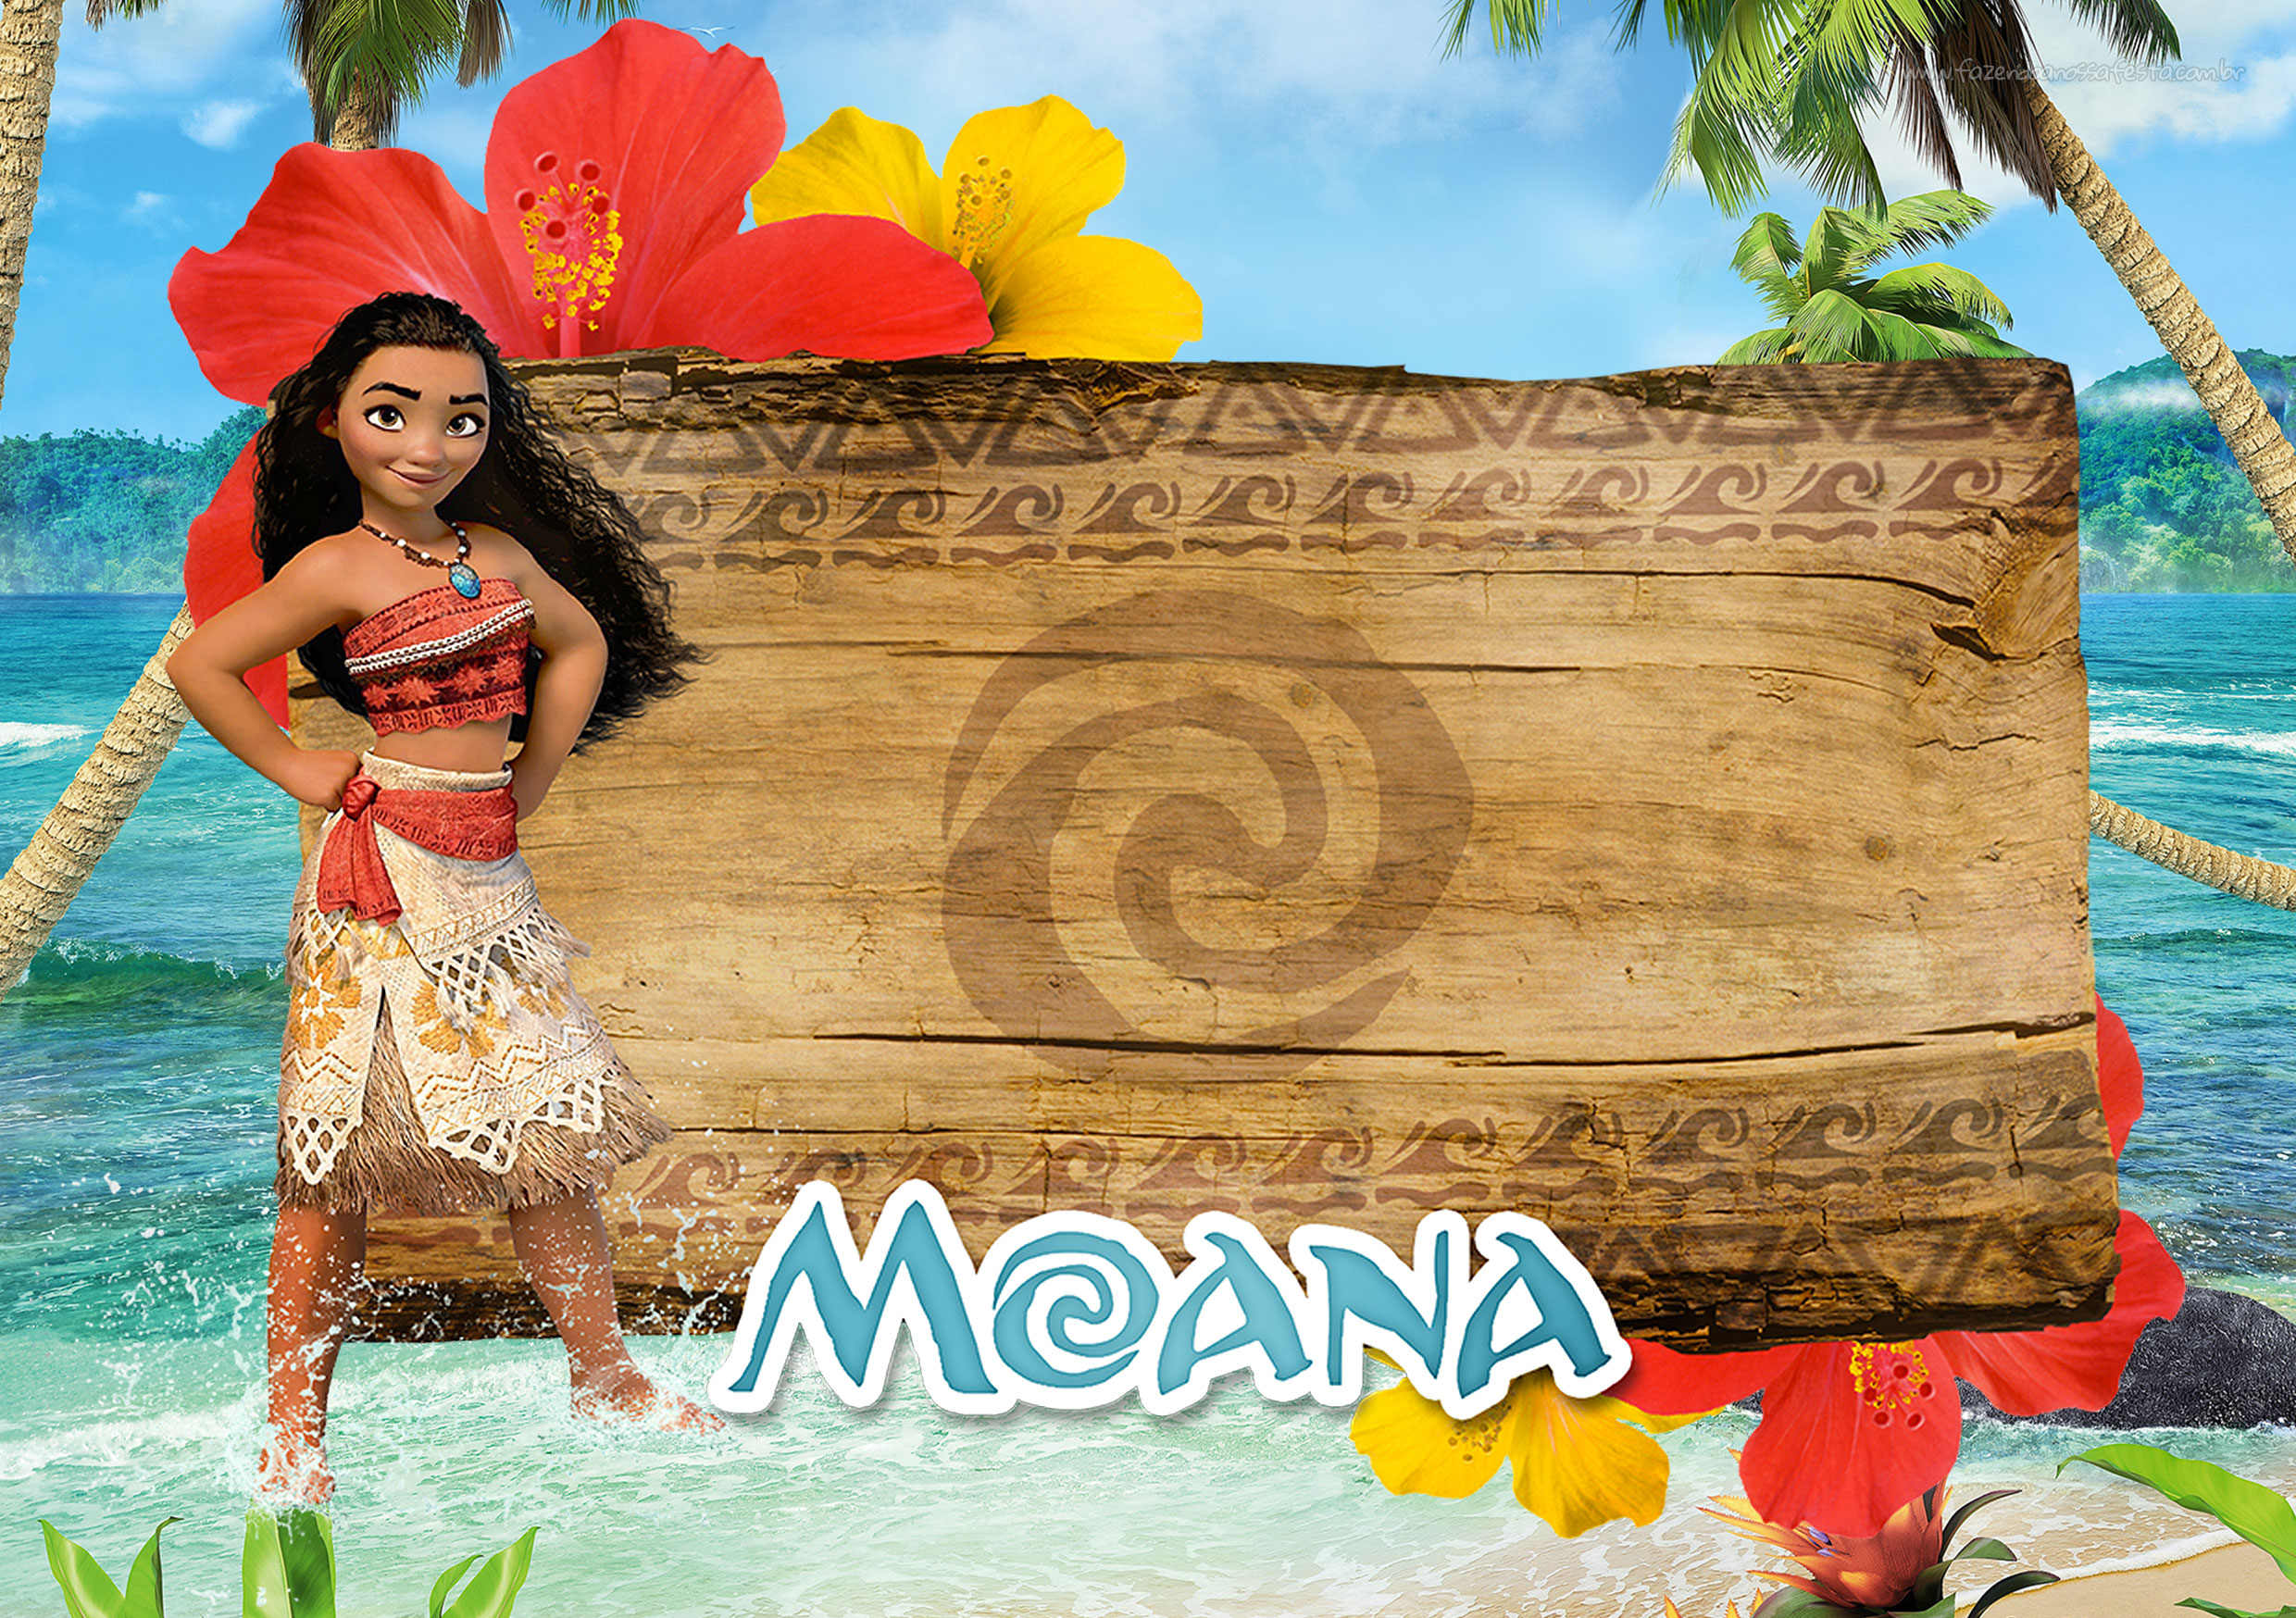 Convite Moana moreover Pack De Logos De Restaurante En Diseno Vintage 1228453 besides Mummy Crafts Treats furthermore Graces Cake Decorating Party together with Slaaie. on pizza cupcake ideas